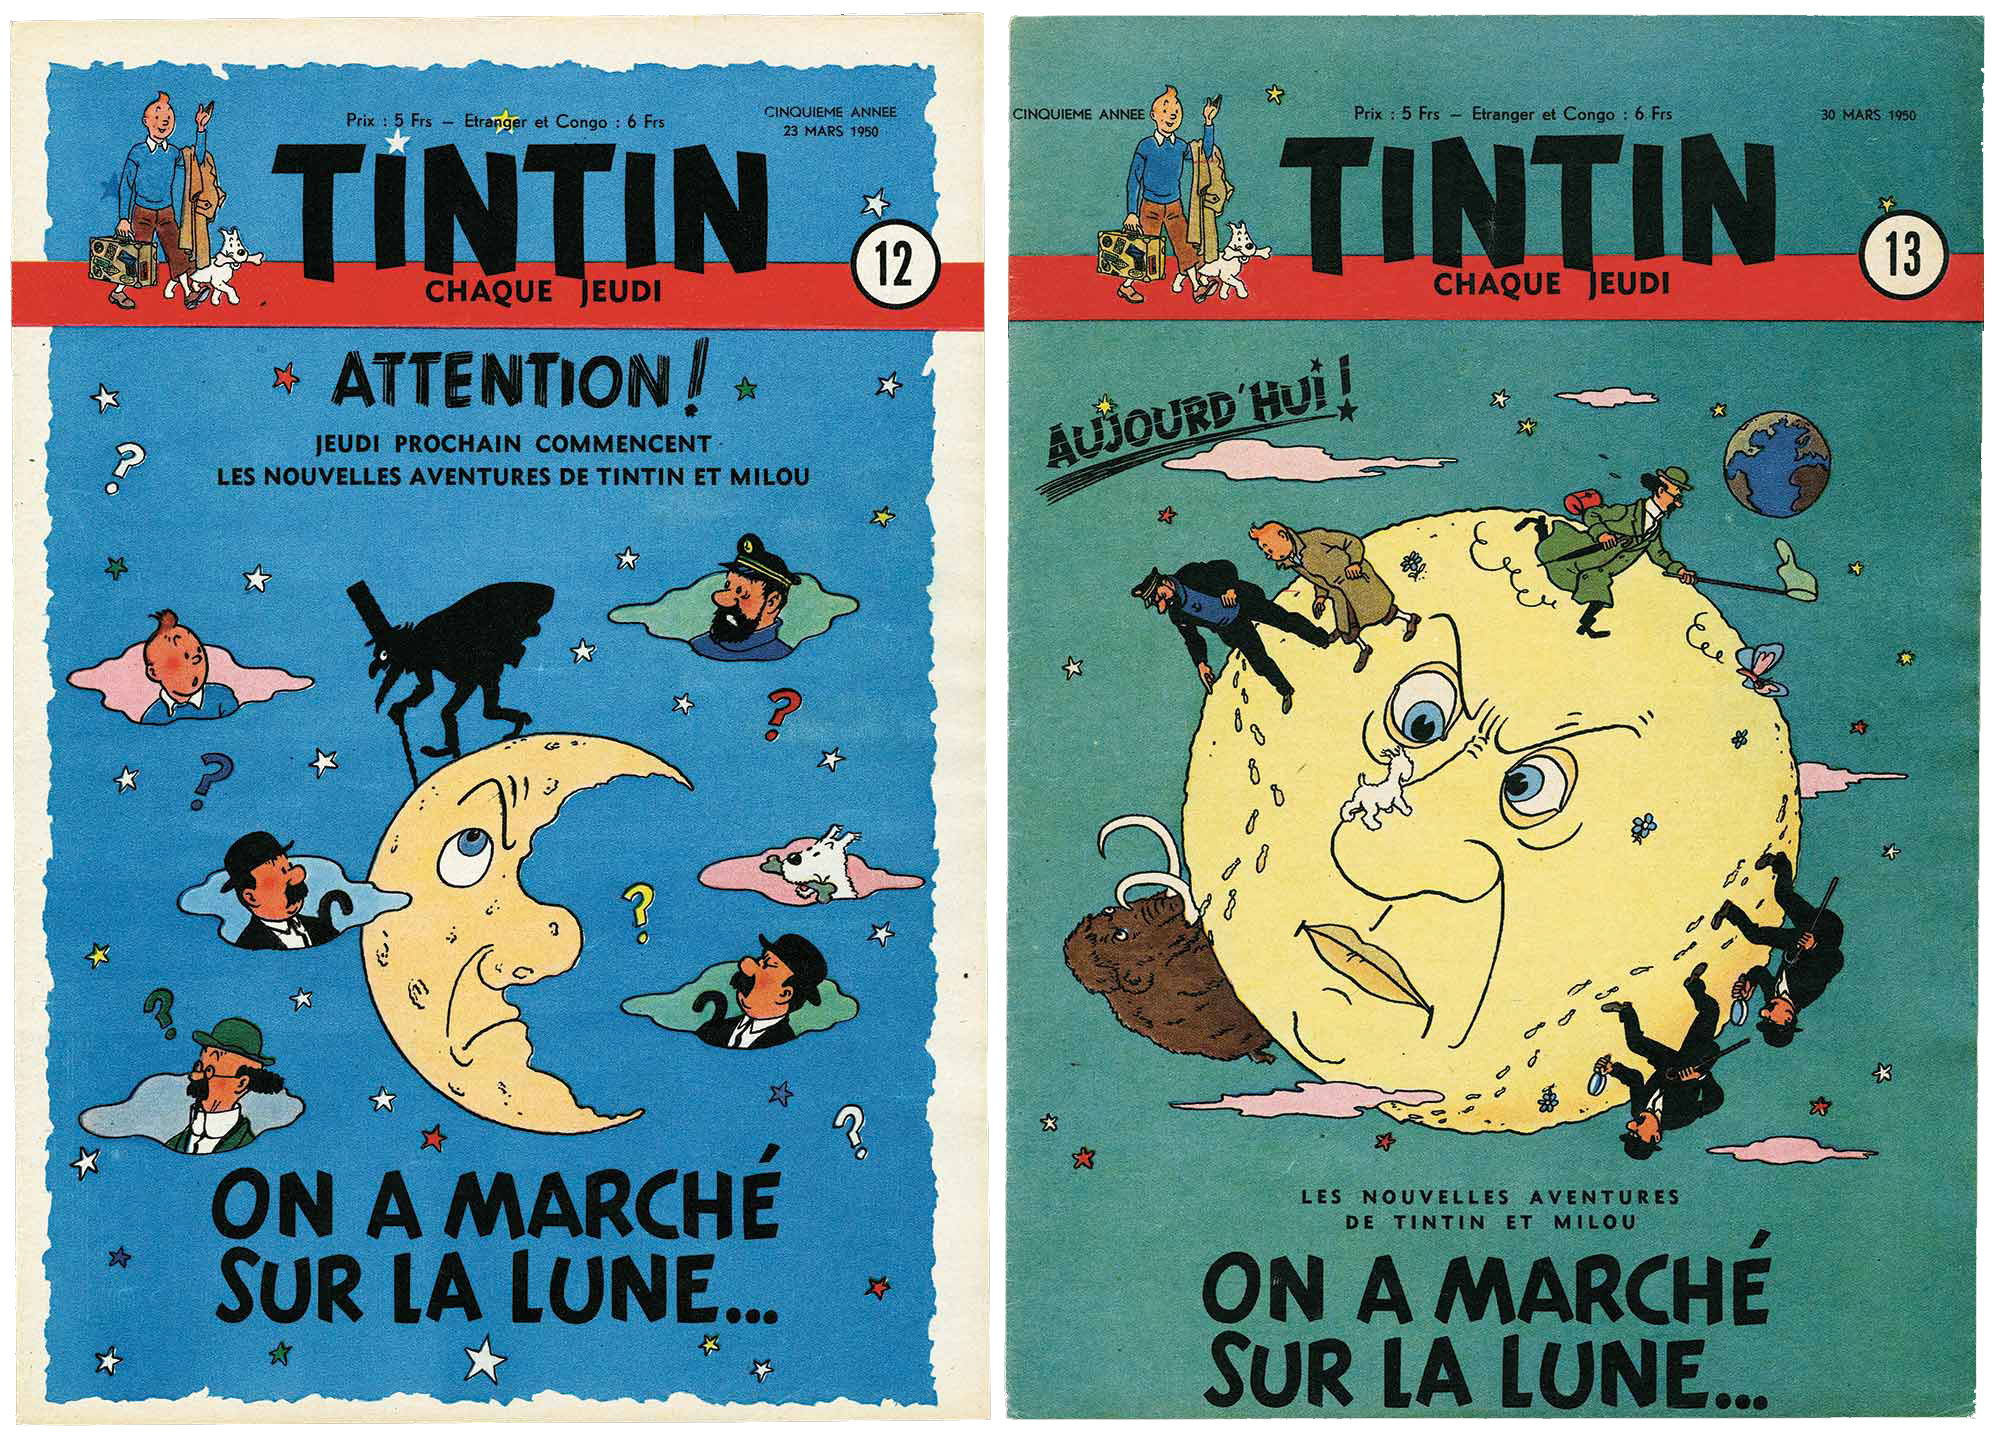 Tintin - The Adventures of Tintin - Destination Moon